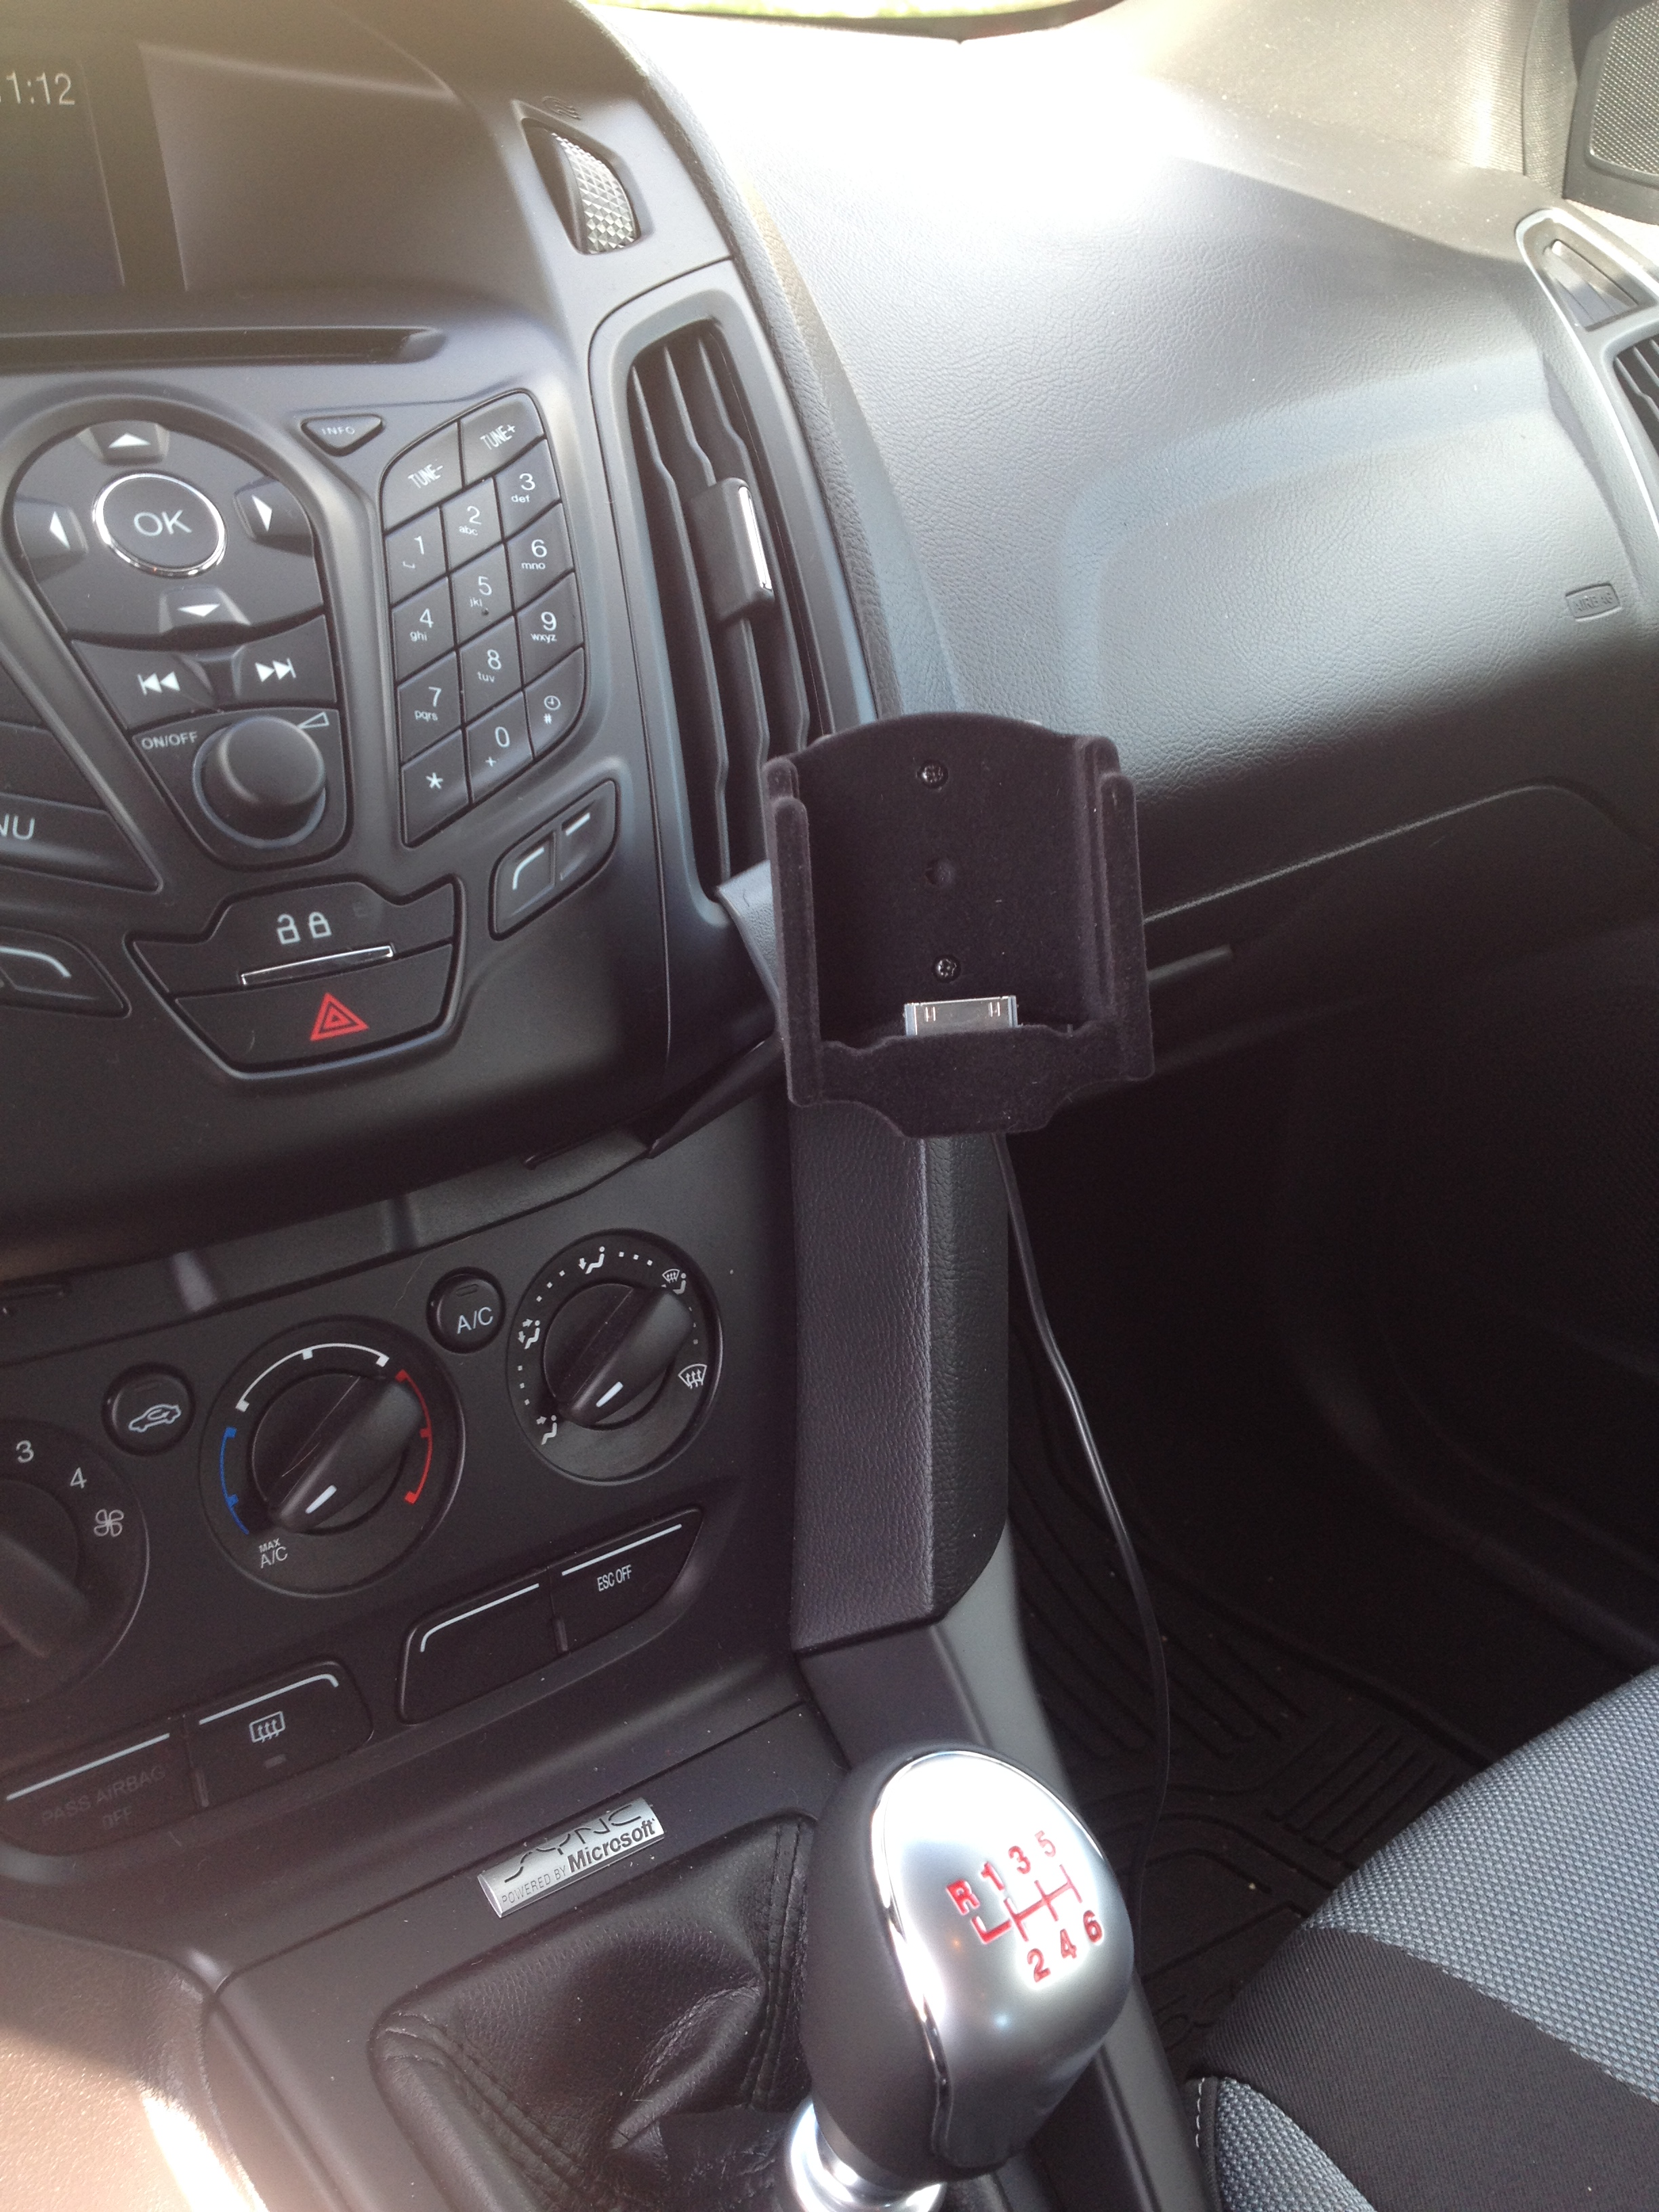 How To Conceal Usb Cable From Phone Dock To Center Console